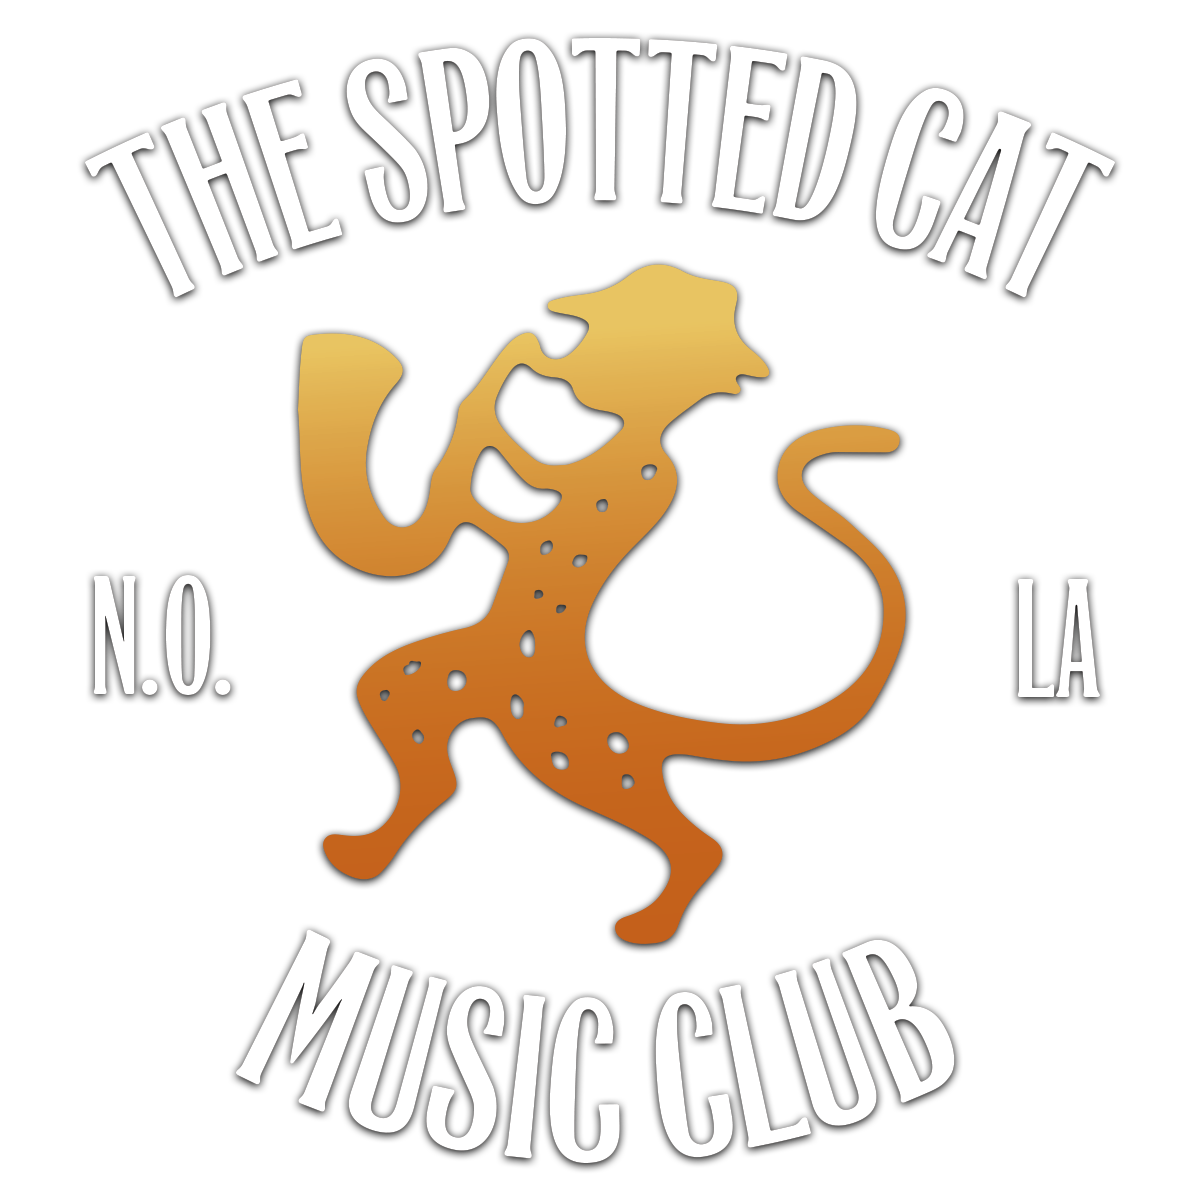 Png music video clips 2012. The spotted cat club